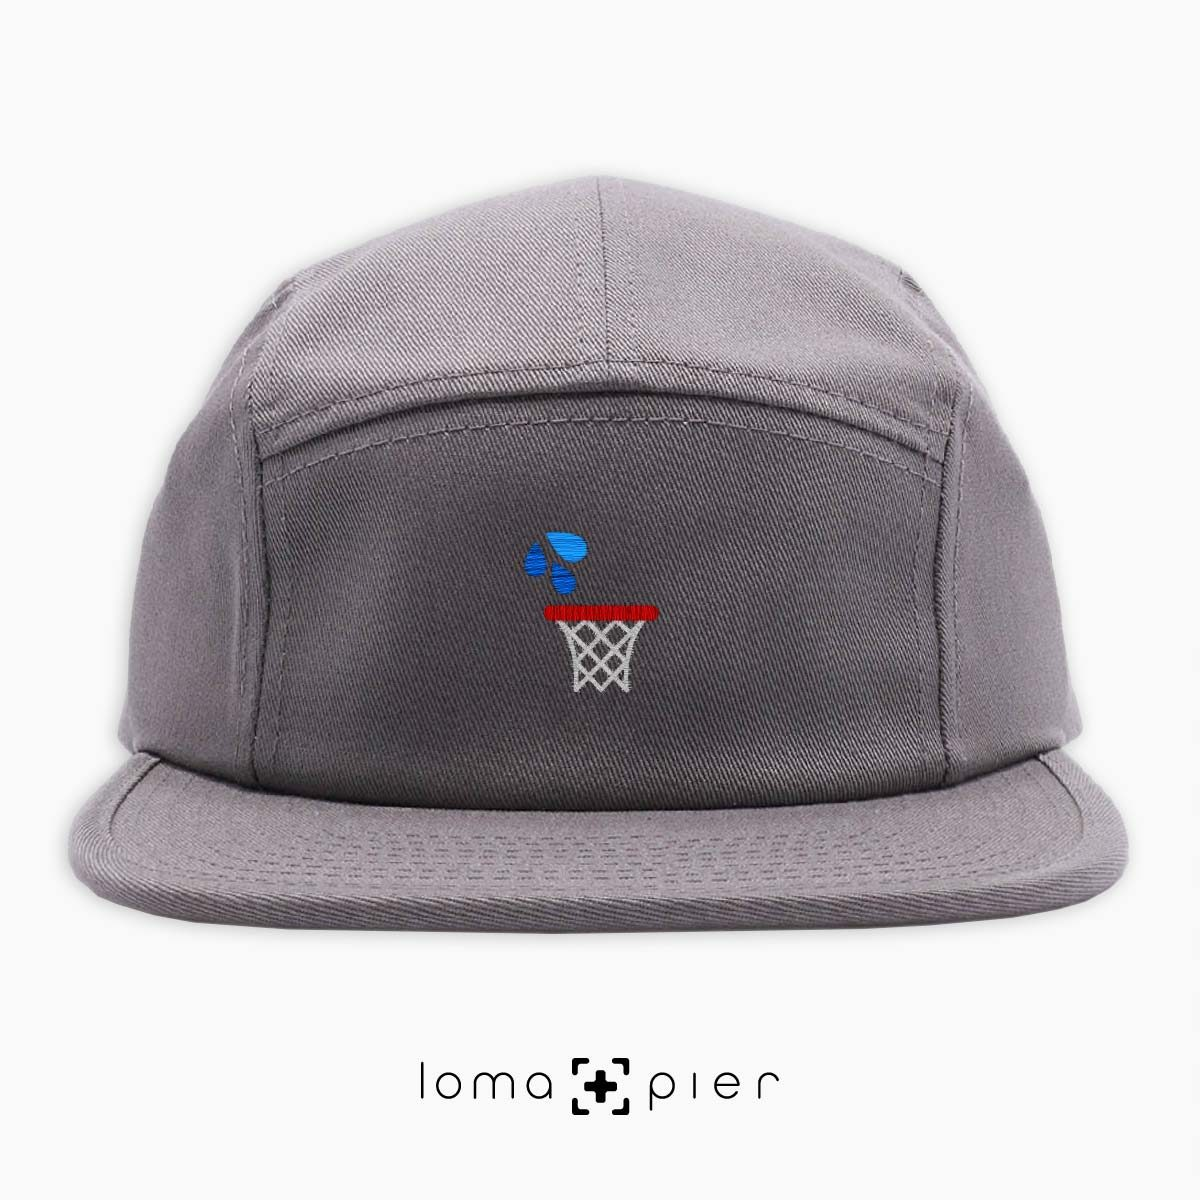 WET JUMPER basketball hoop icon embroidered on a grey cotton 5-panel hat by loma+pier hat store